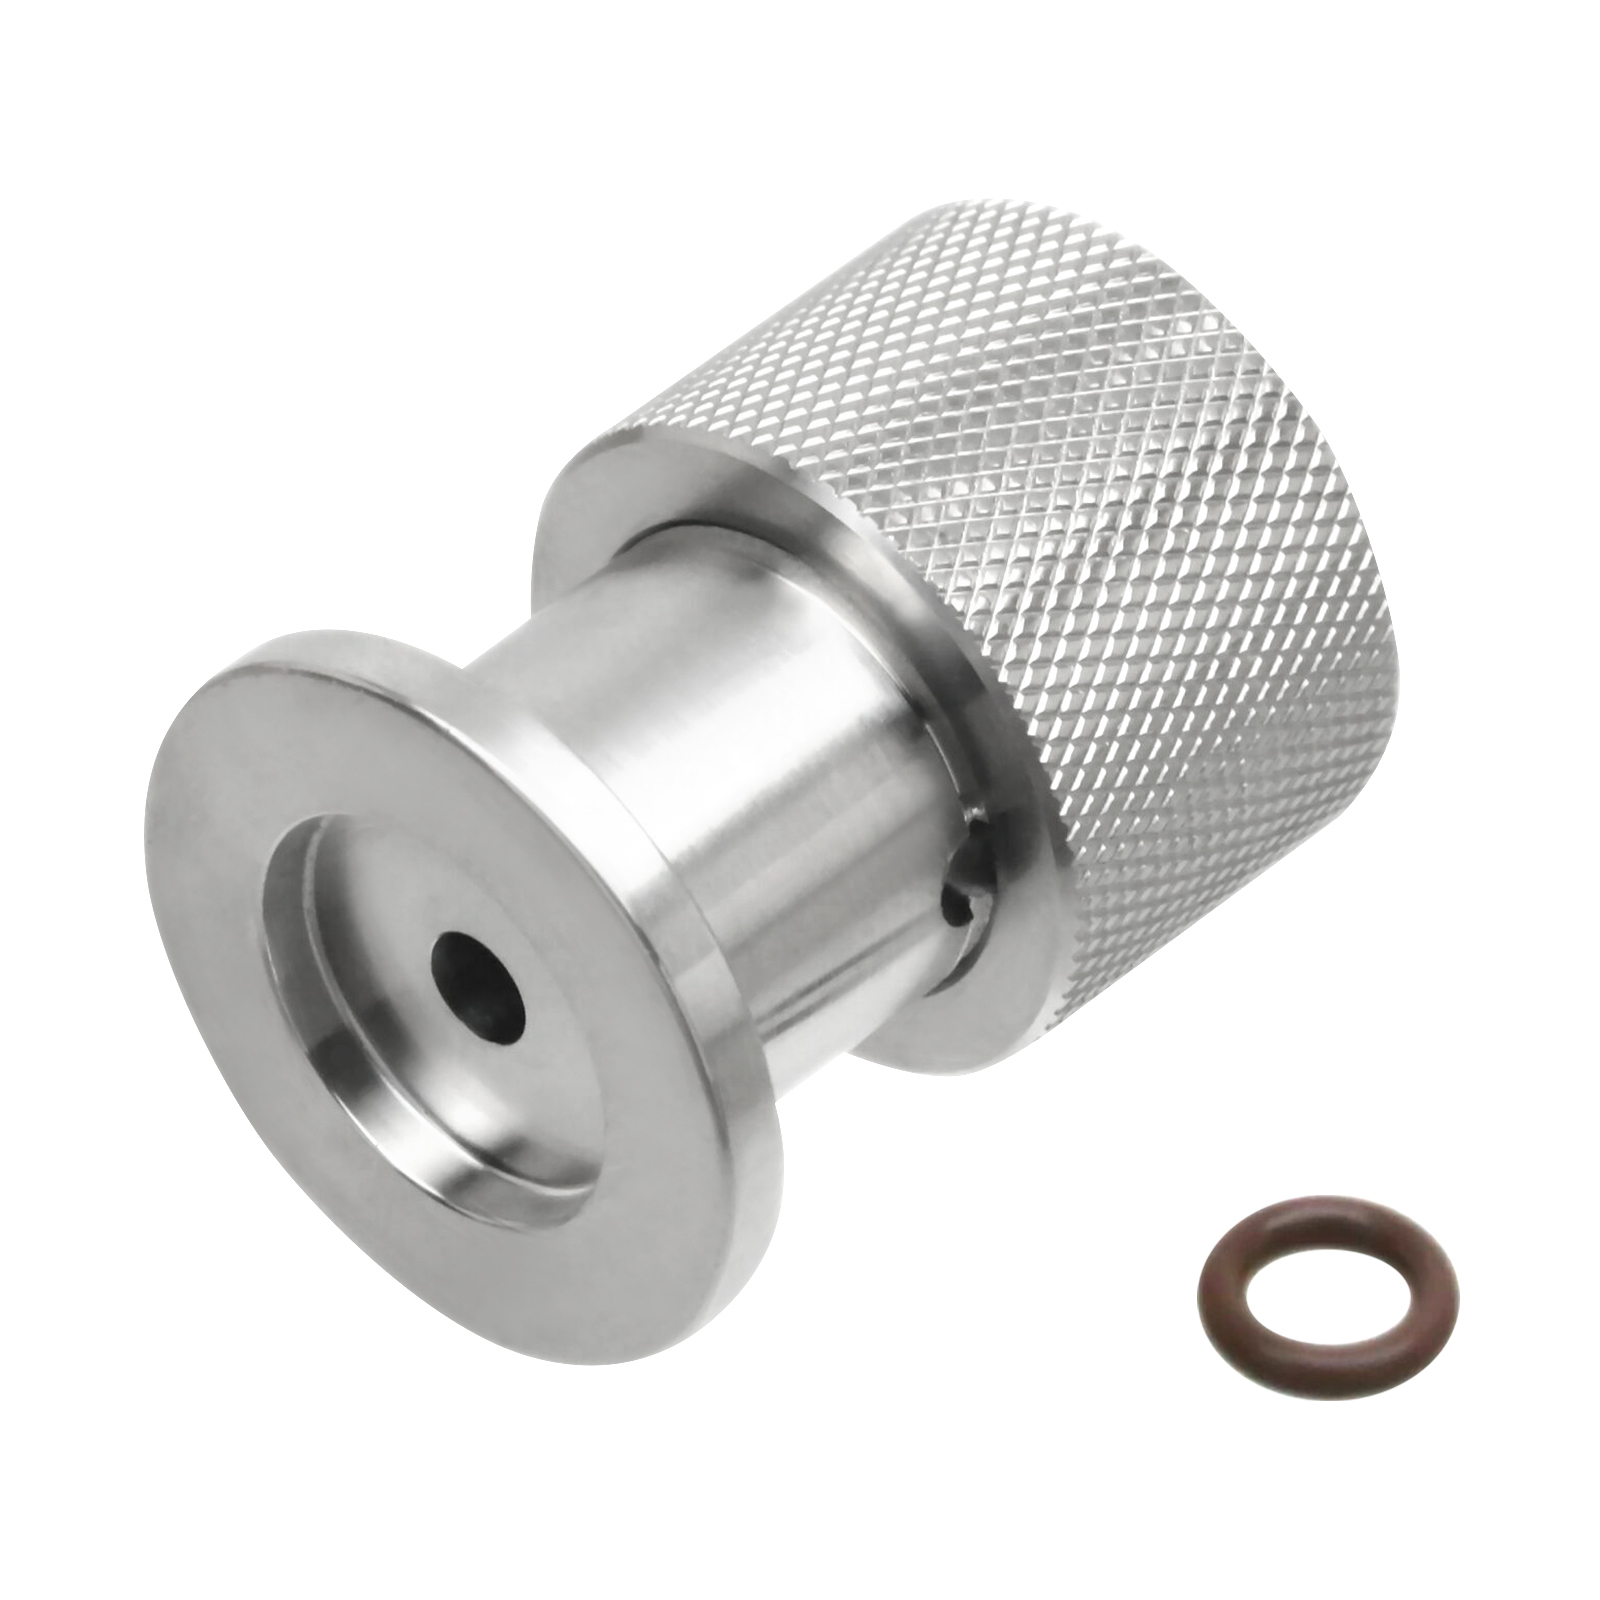 KF16 Flange Stainless Steel Vacuum Vent Valve Or Relief Valve For Vaccum System